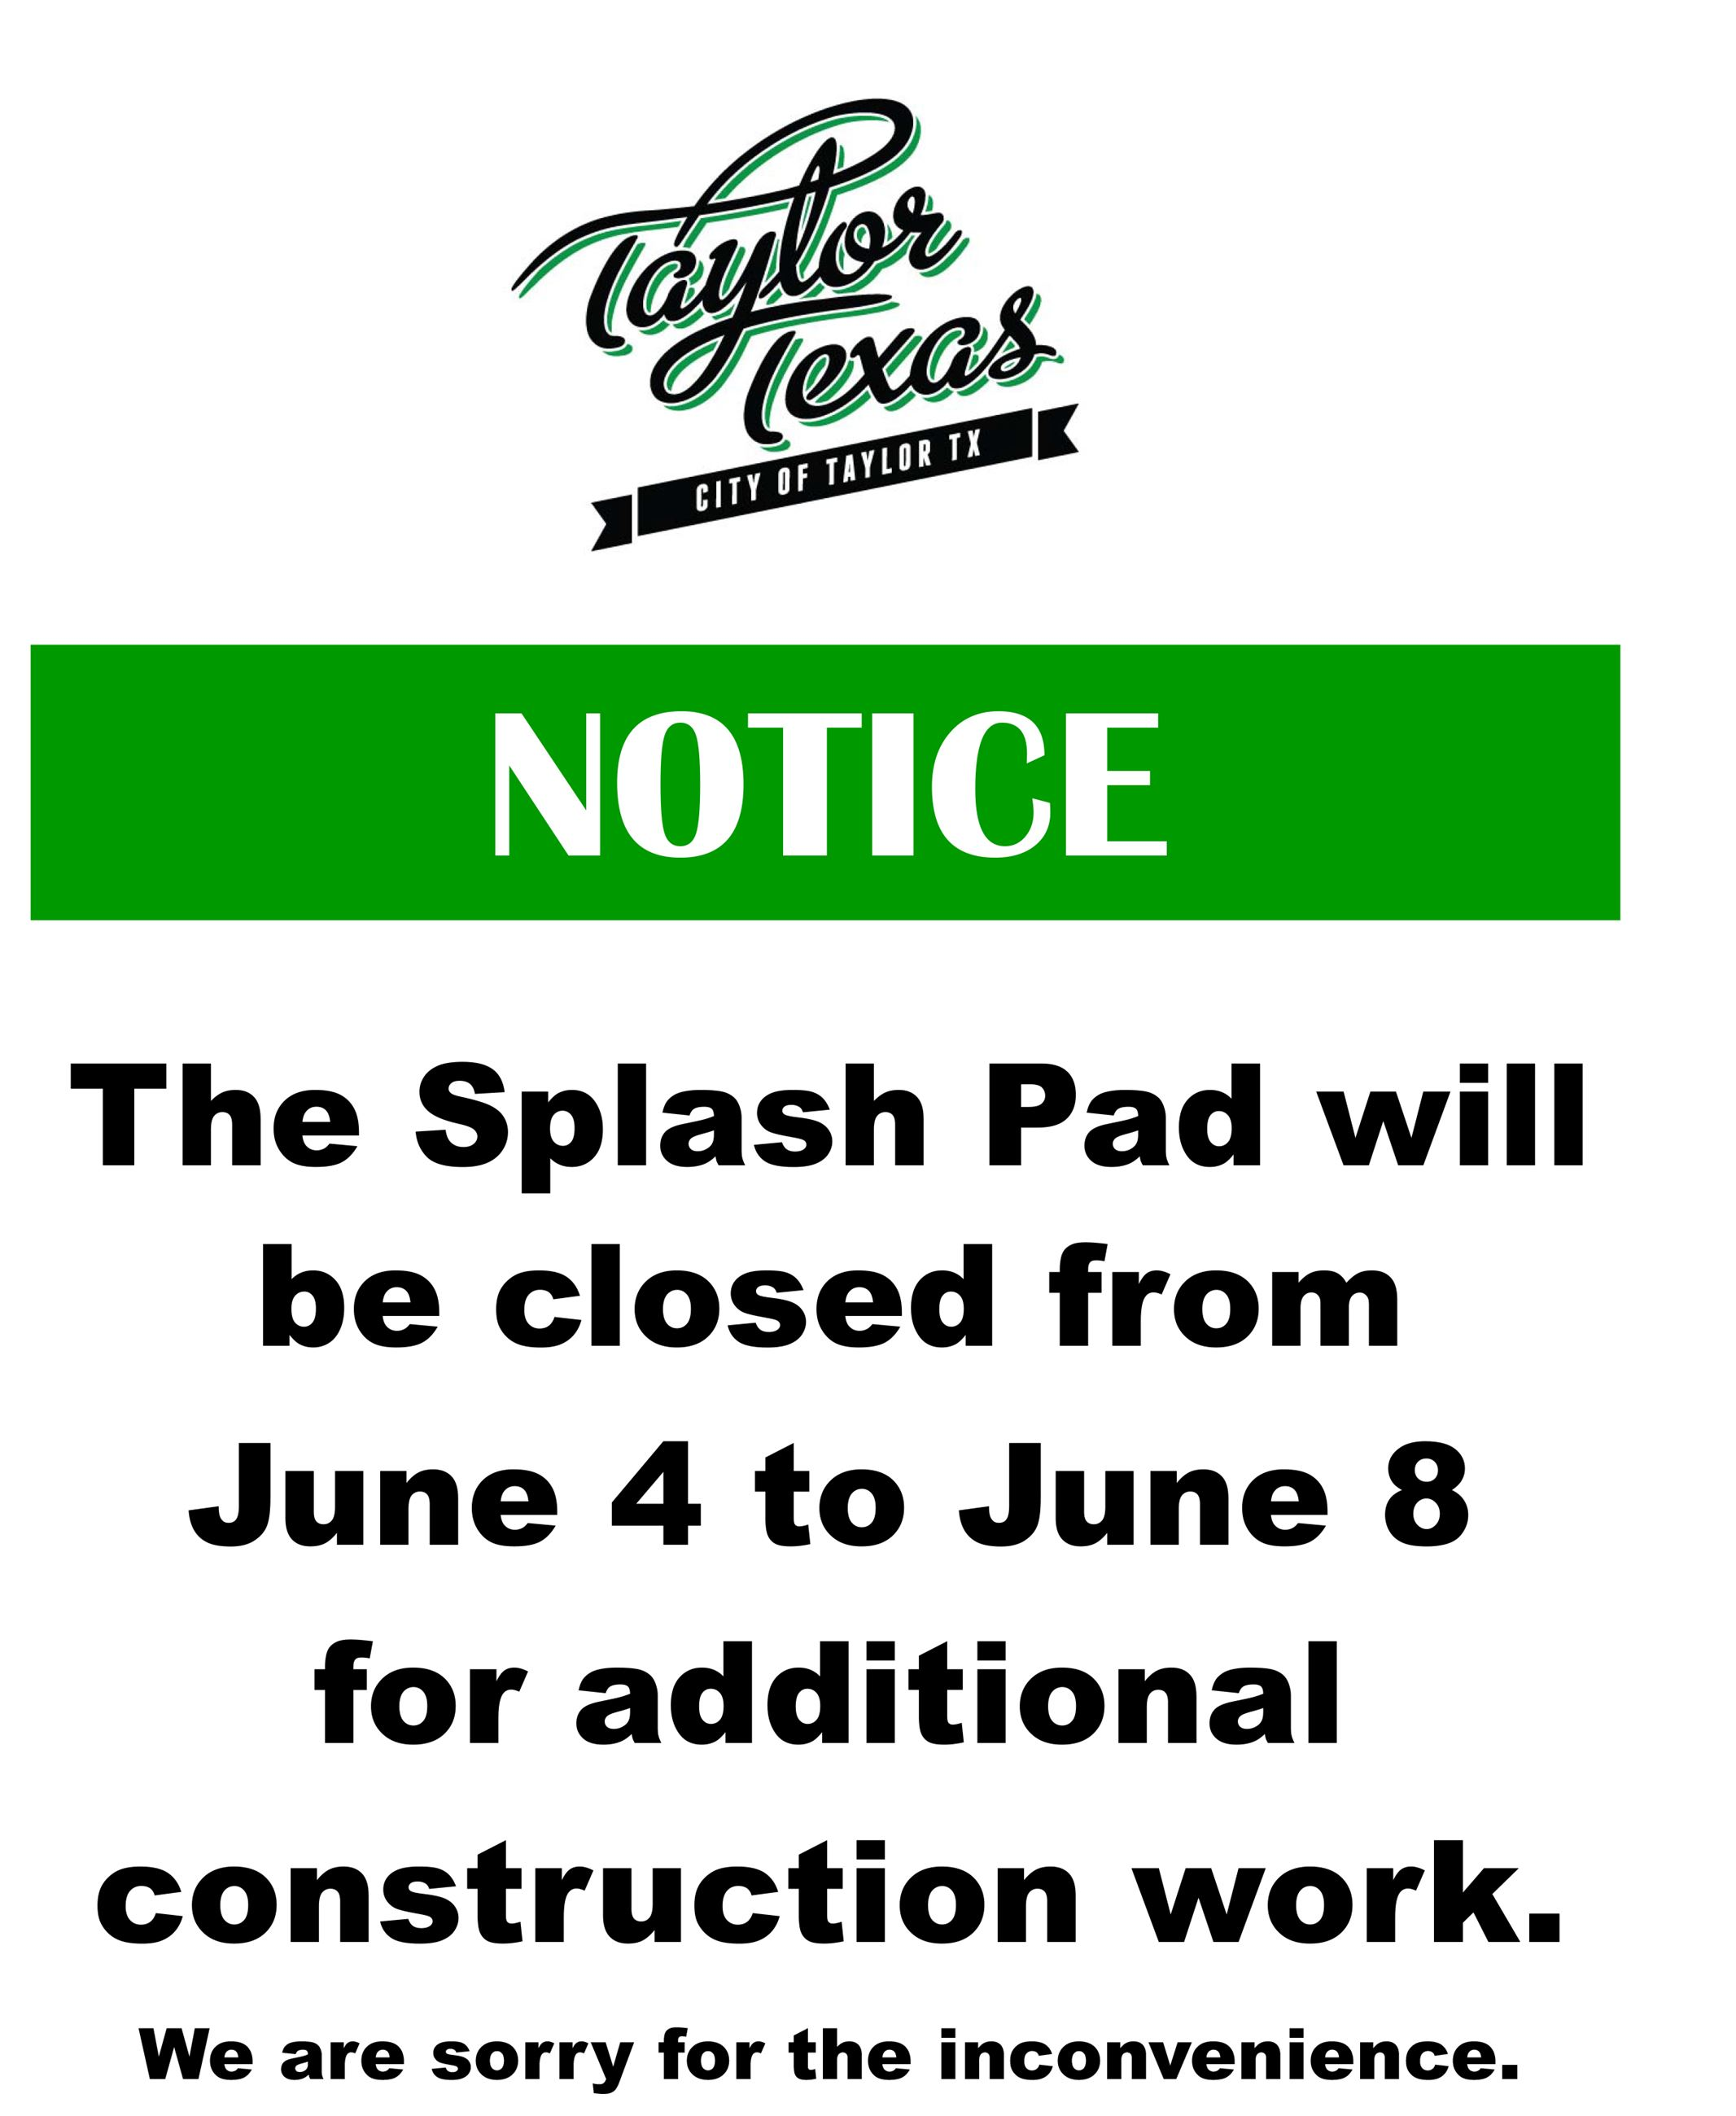 Splash pad closure June 2018